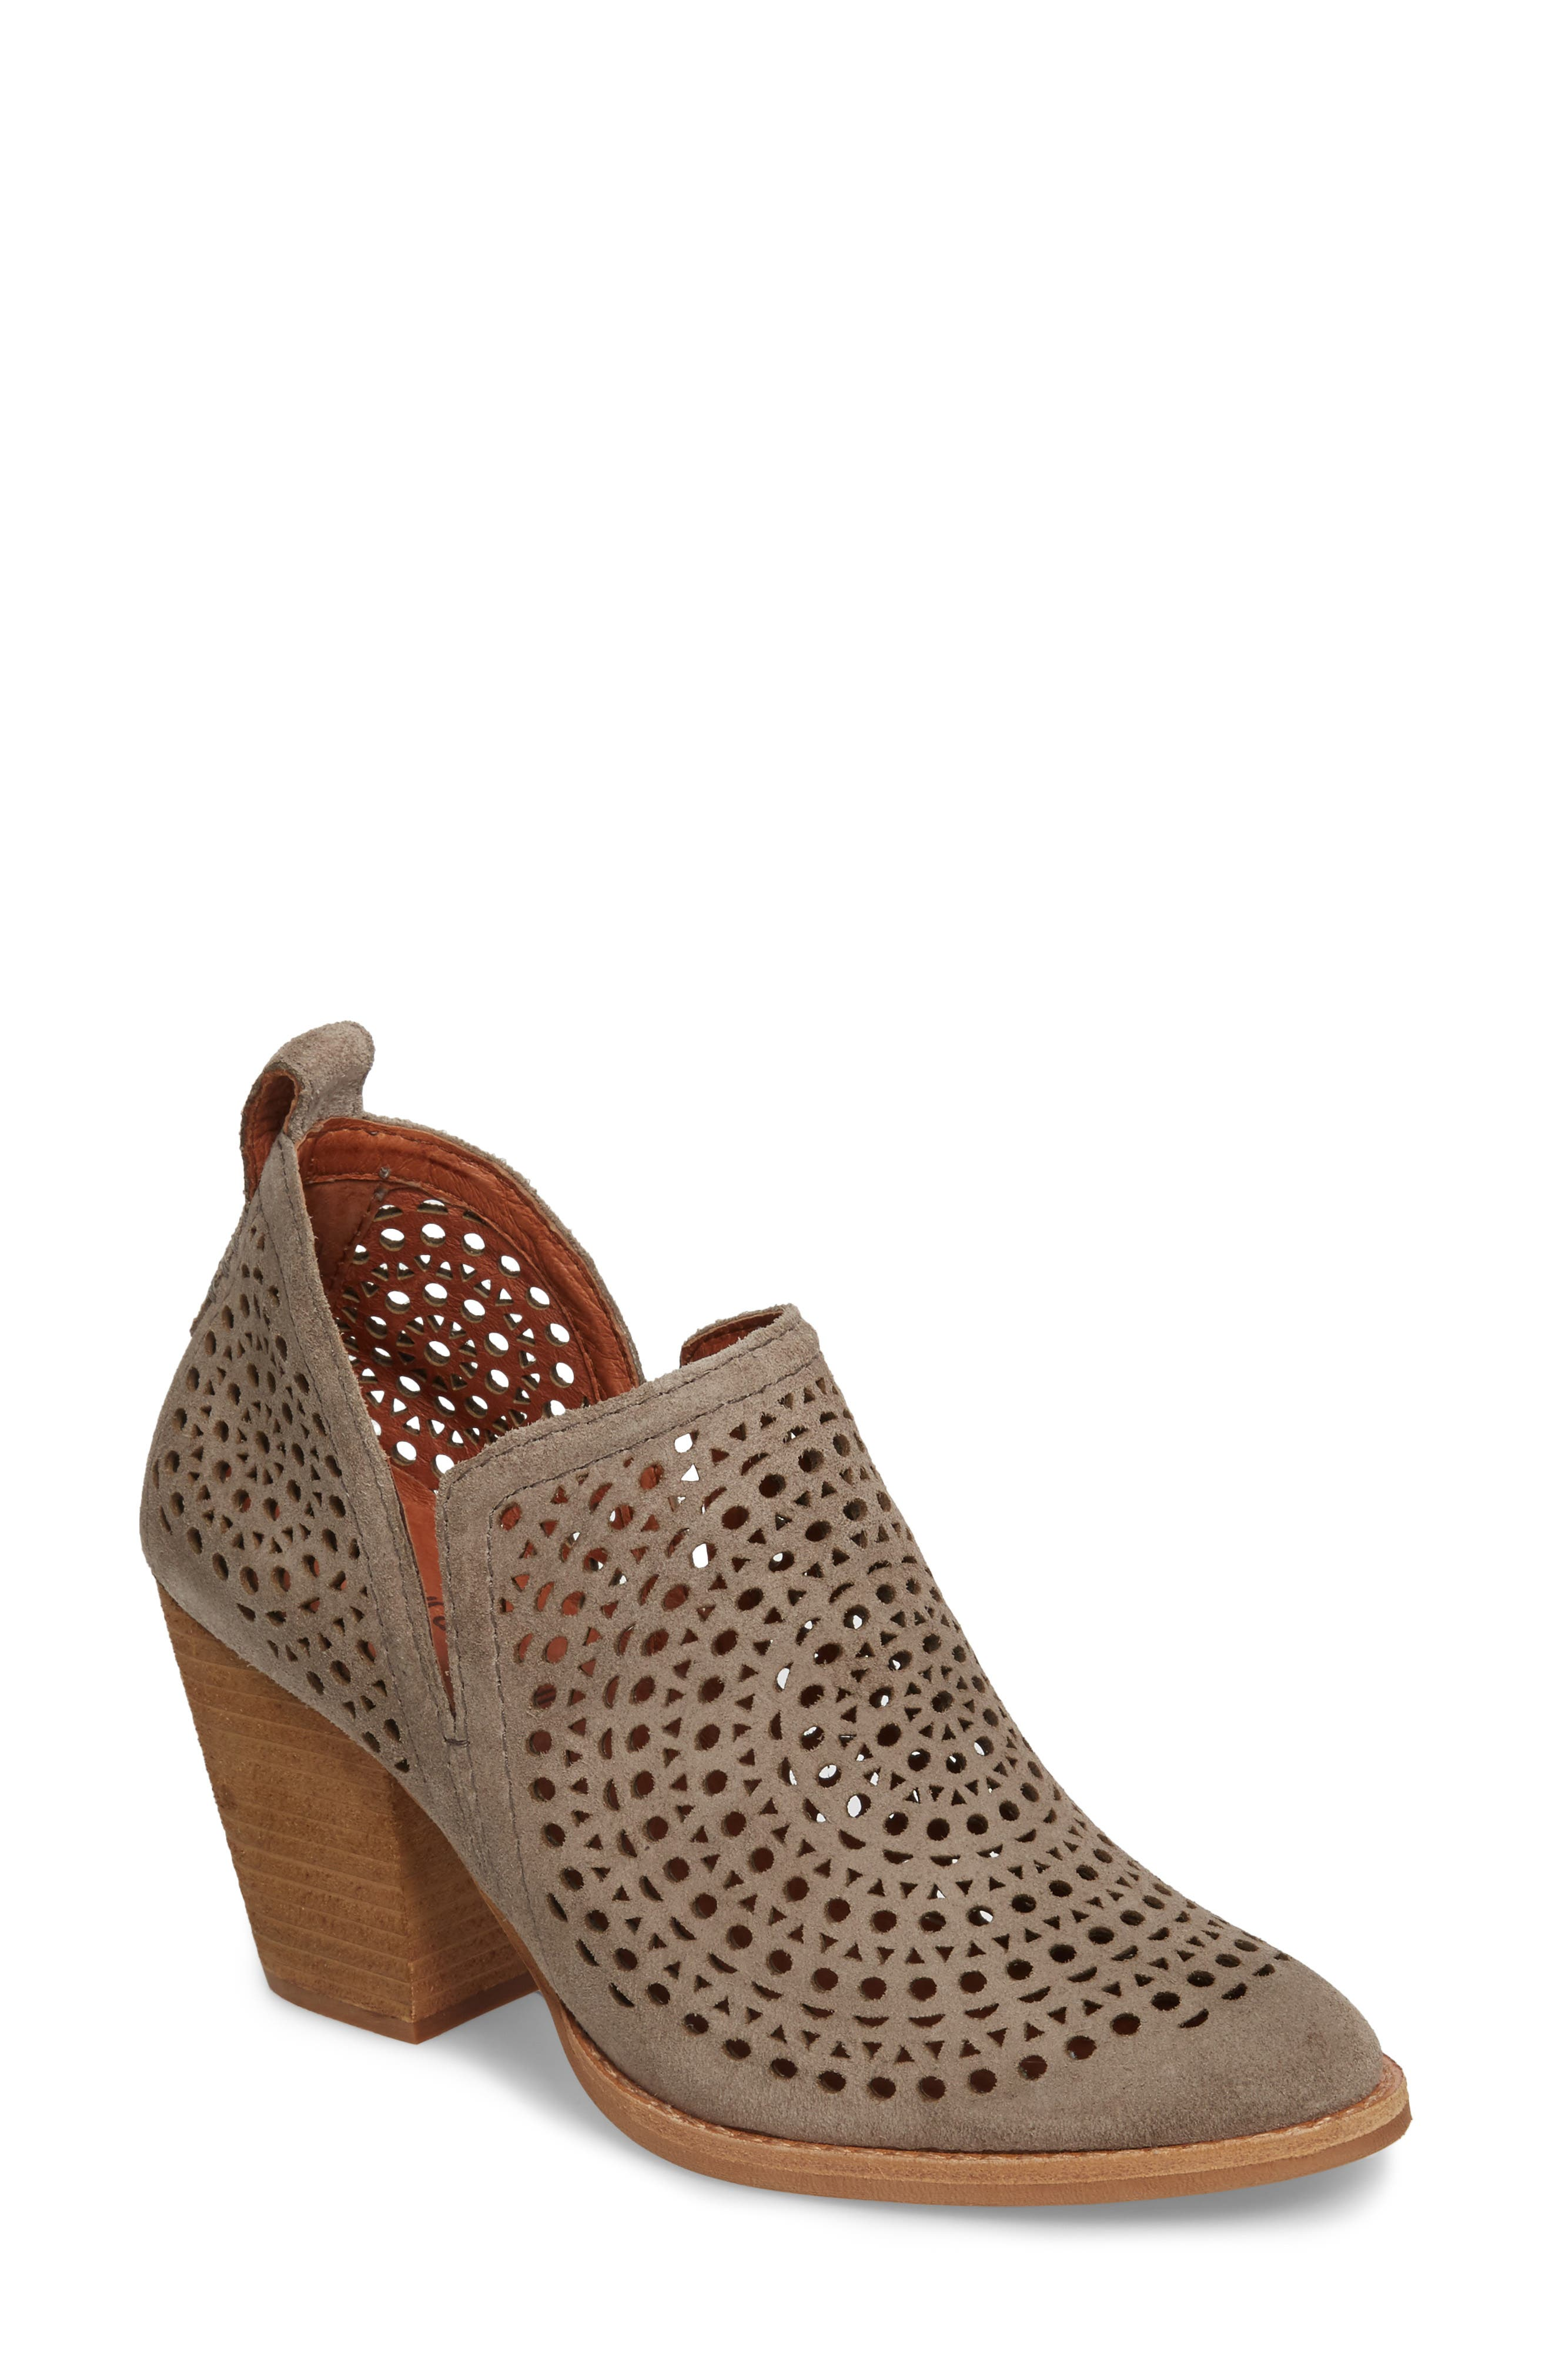 Rosalee Bootie,                         Main,                         color, TAUPE SUEDE